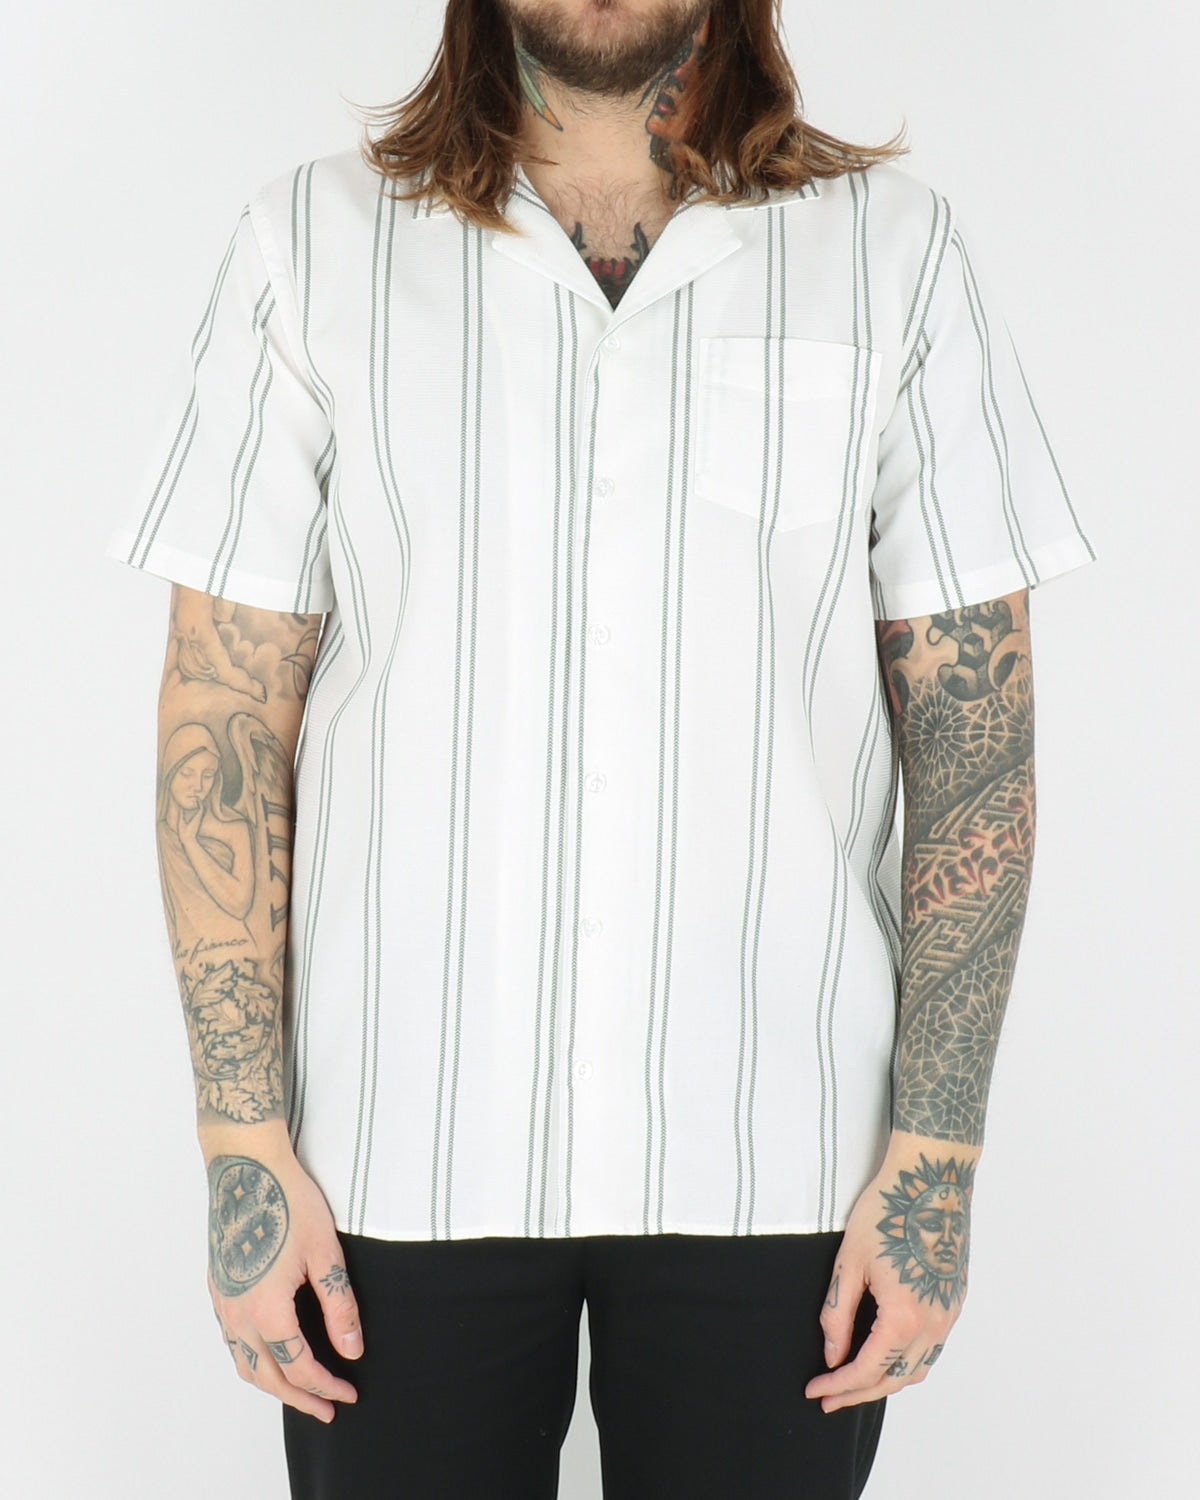 libertine libertine_cave shirt_white_view_1_3